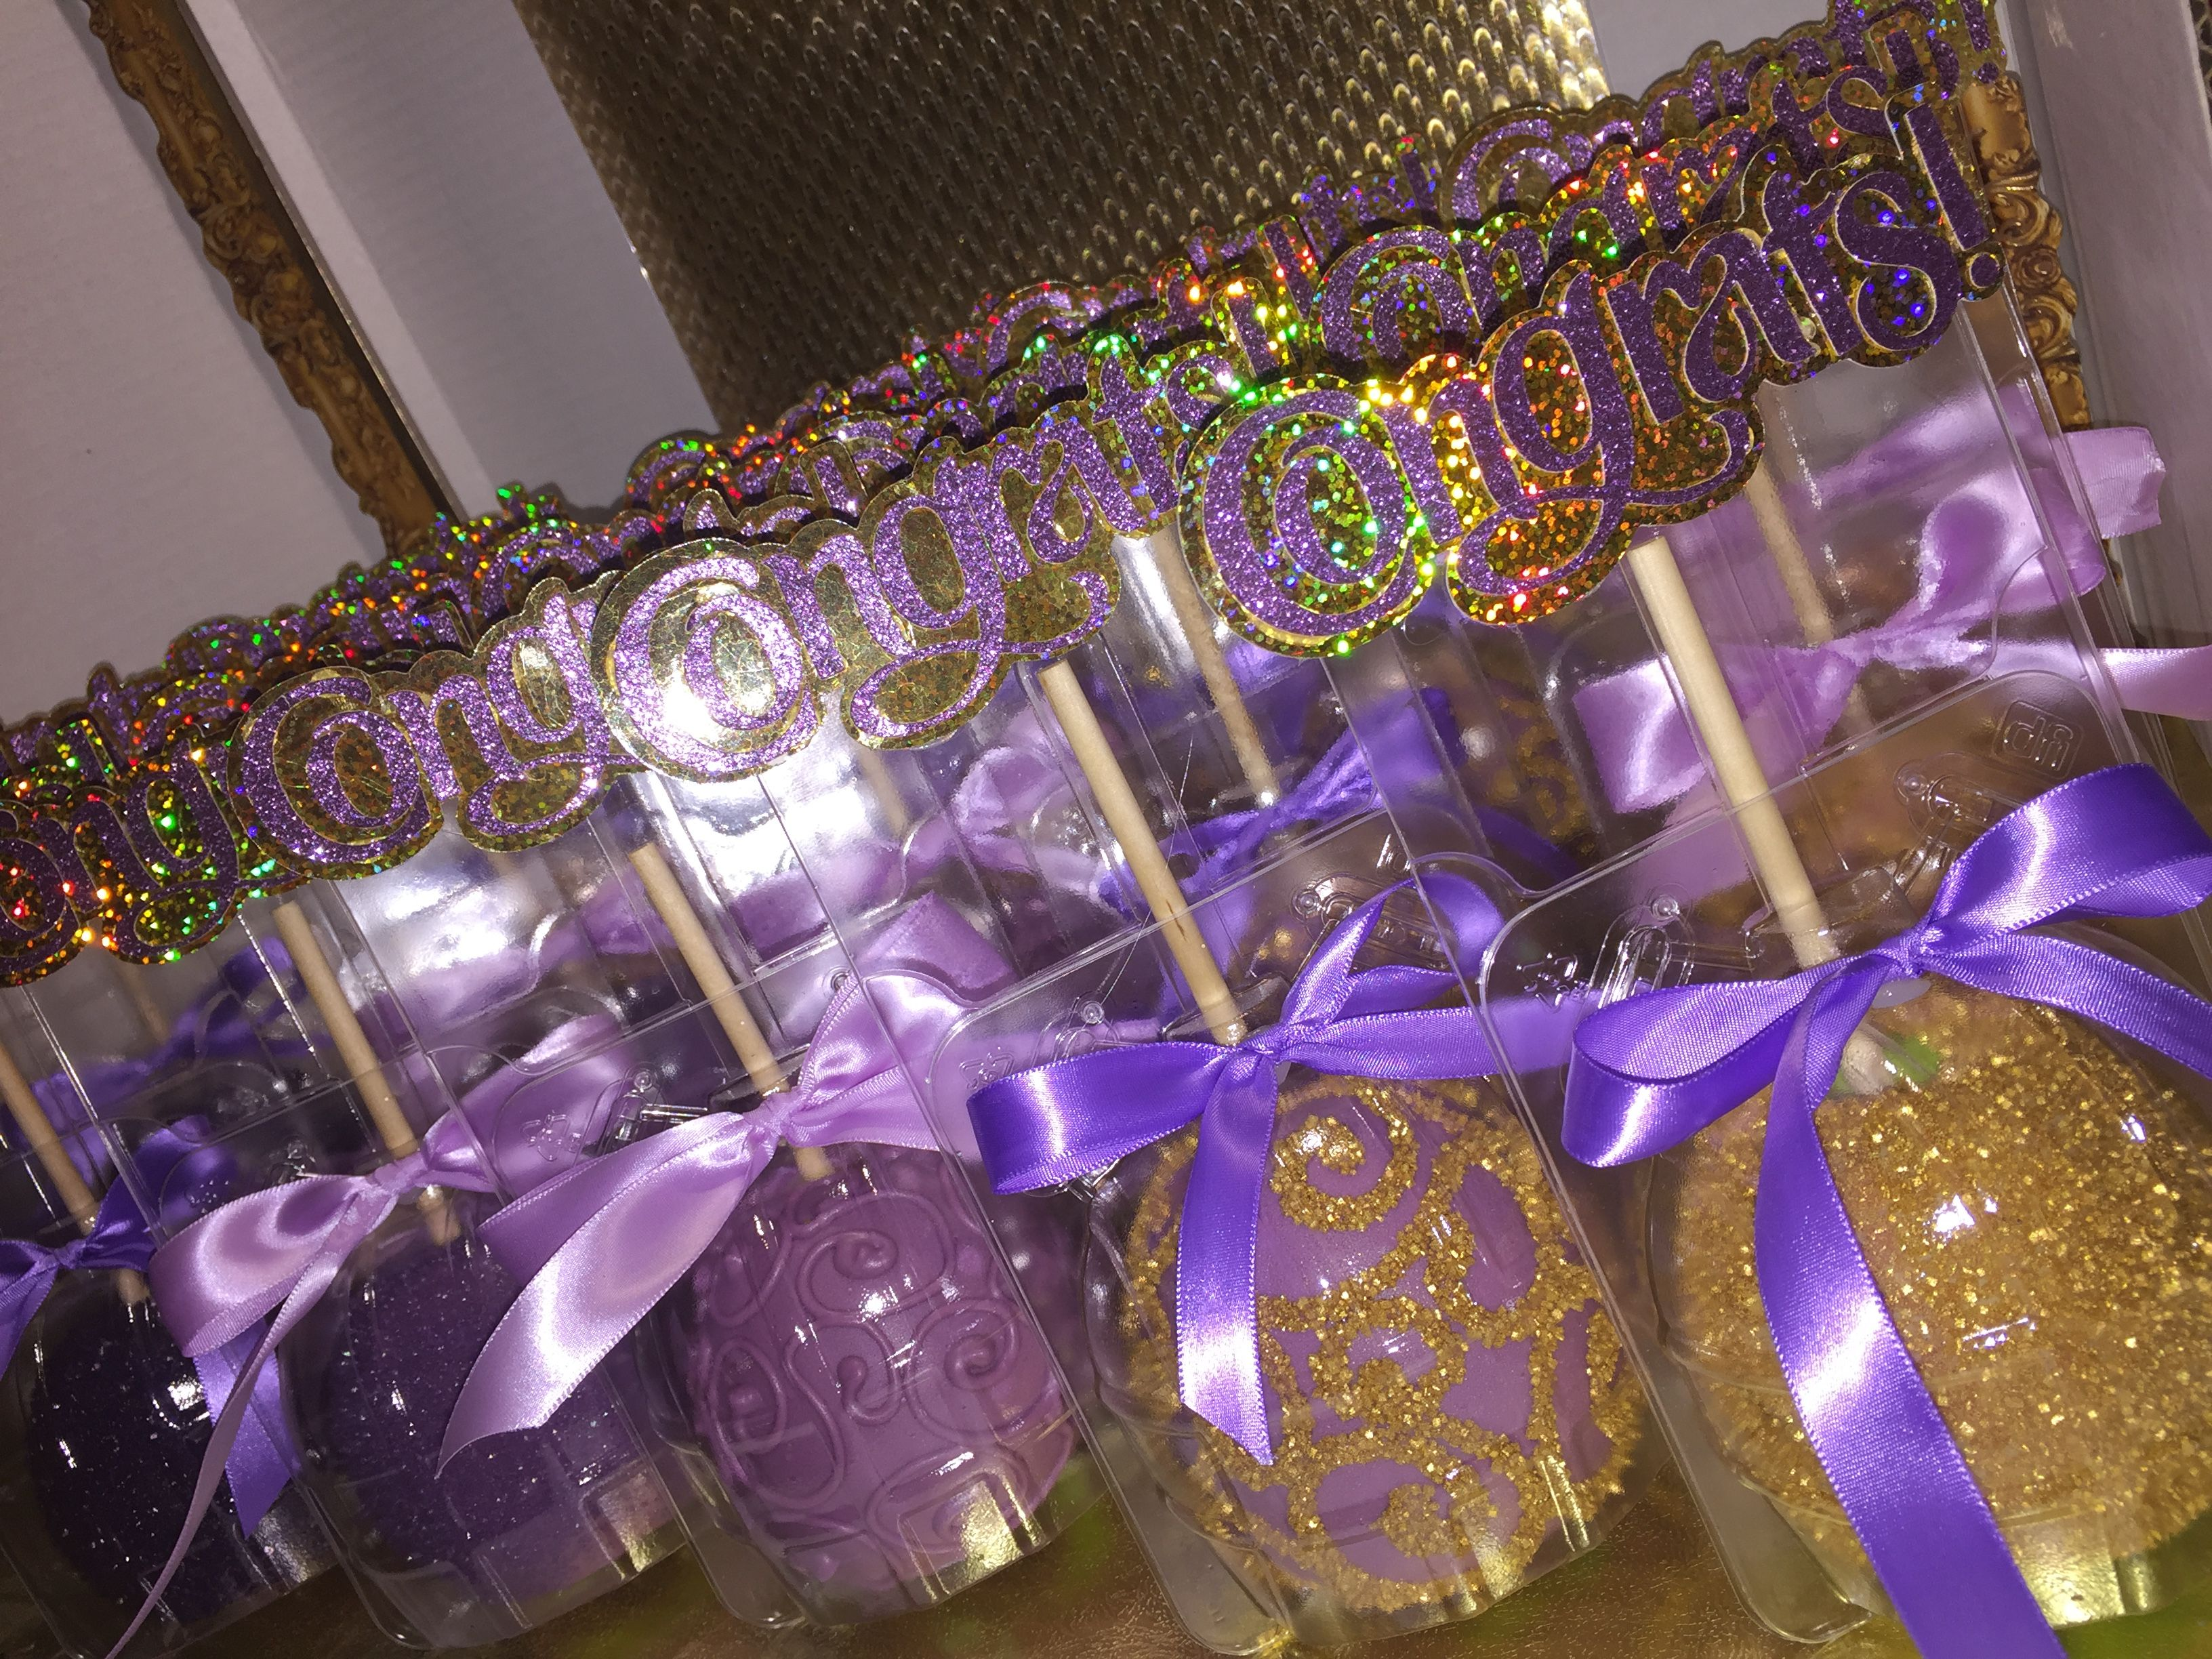 purple and gold chocolate covered apples | I MADE THIS ...